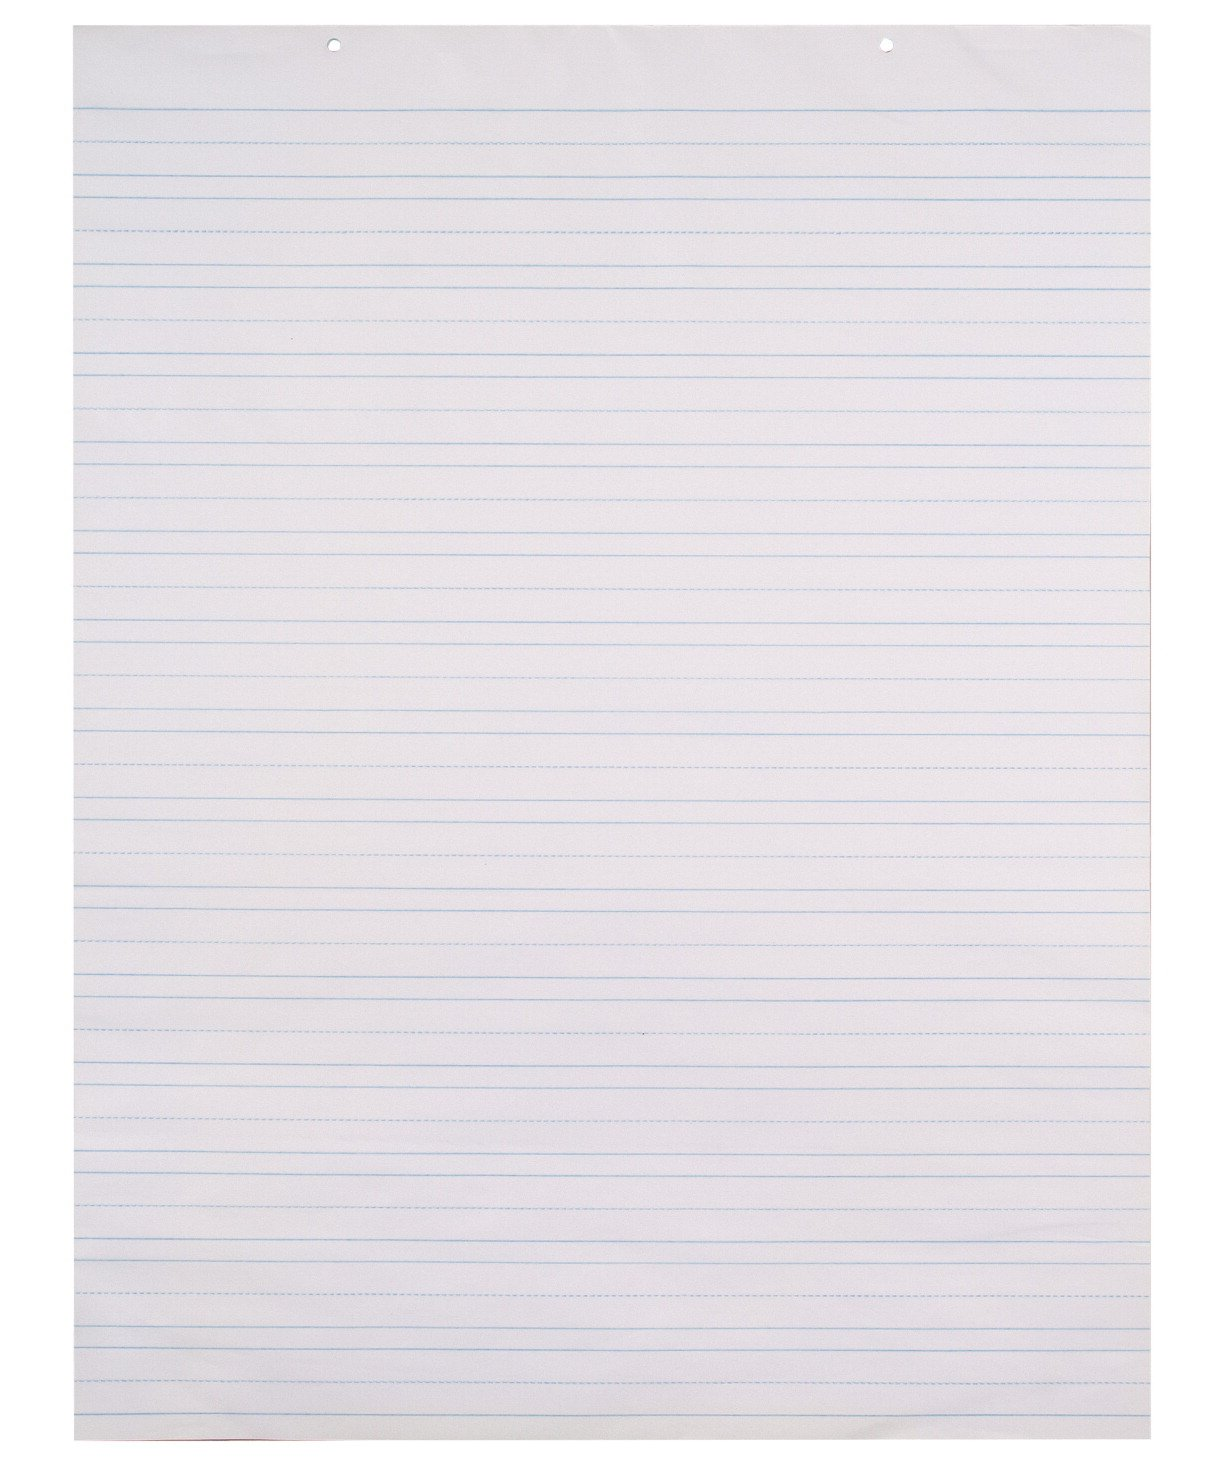 School Smart Chart Paper Pad, 24 x 32 Inches, Ruled 1-1/2 Inch, White, 70 Sheets